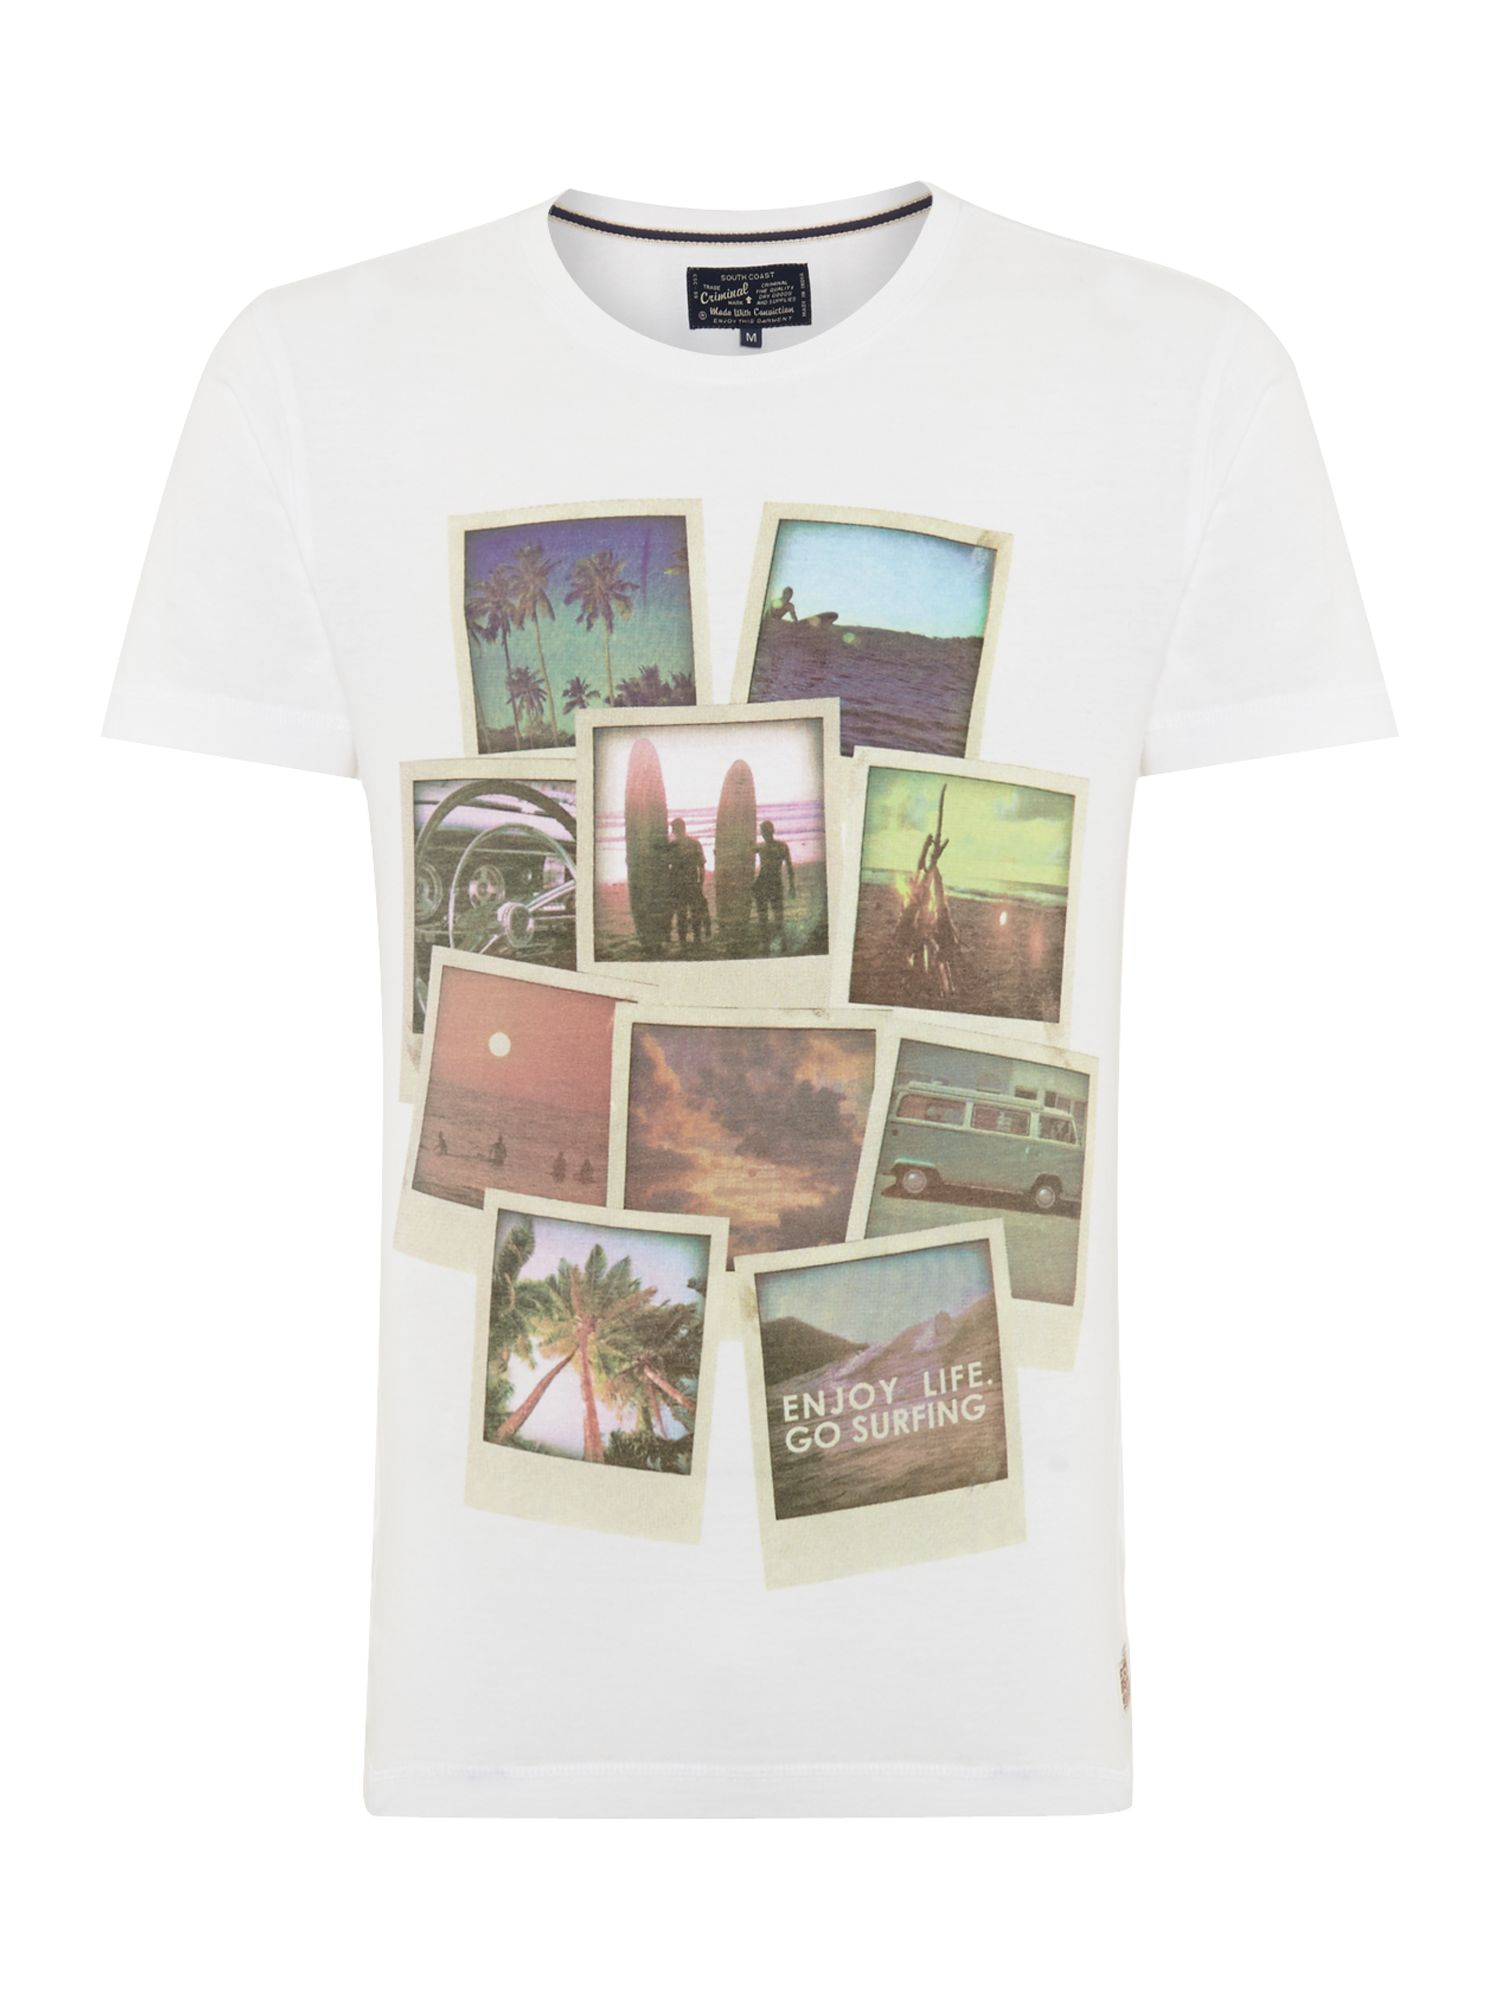 photos graphic tee